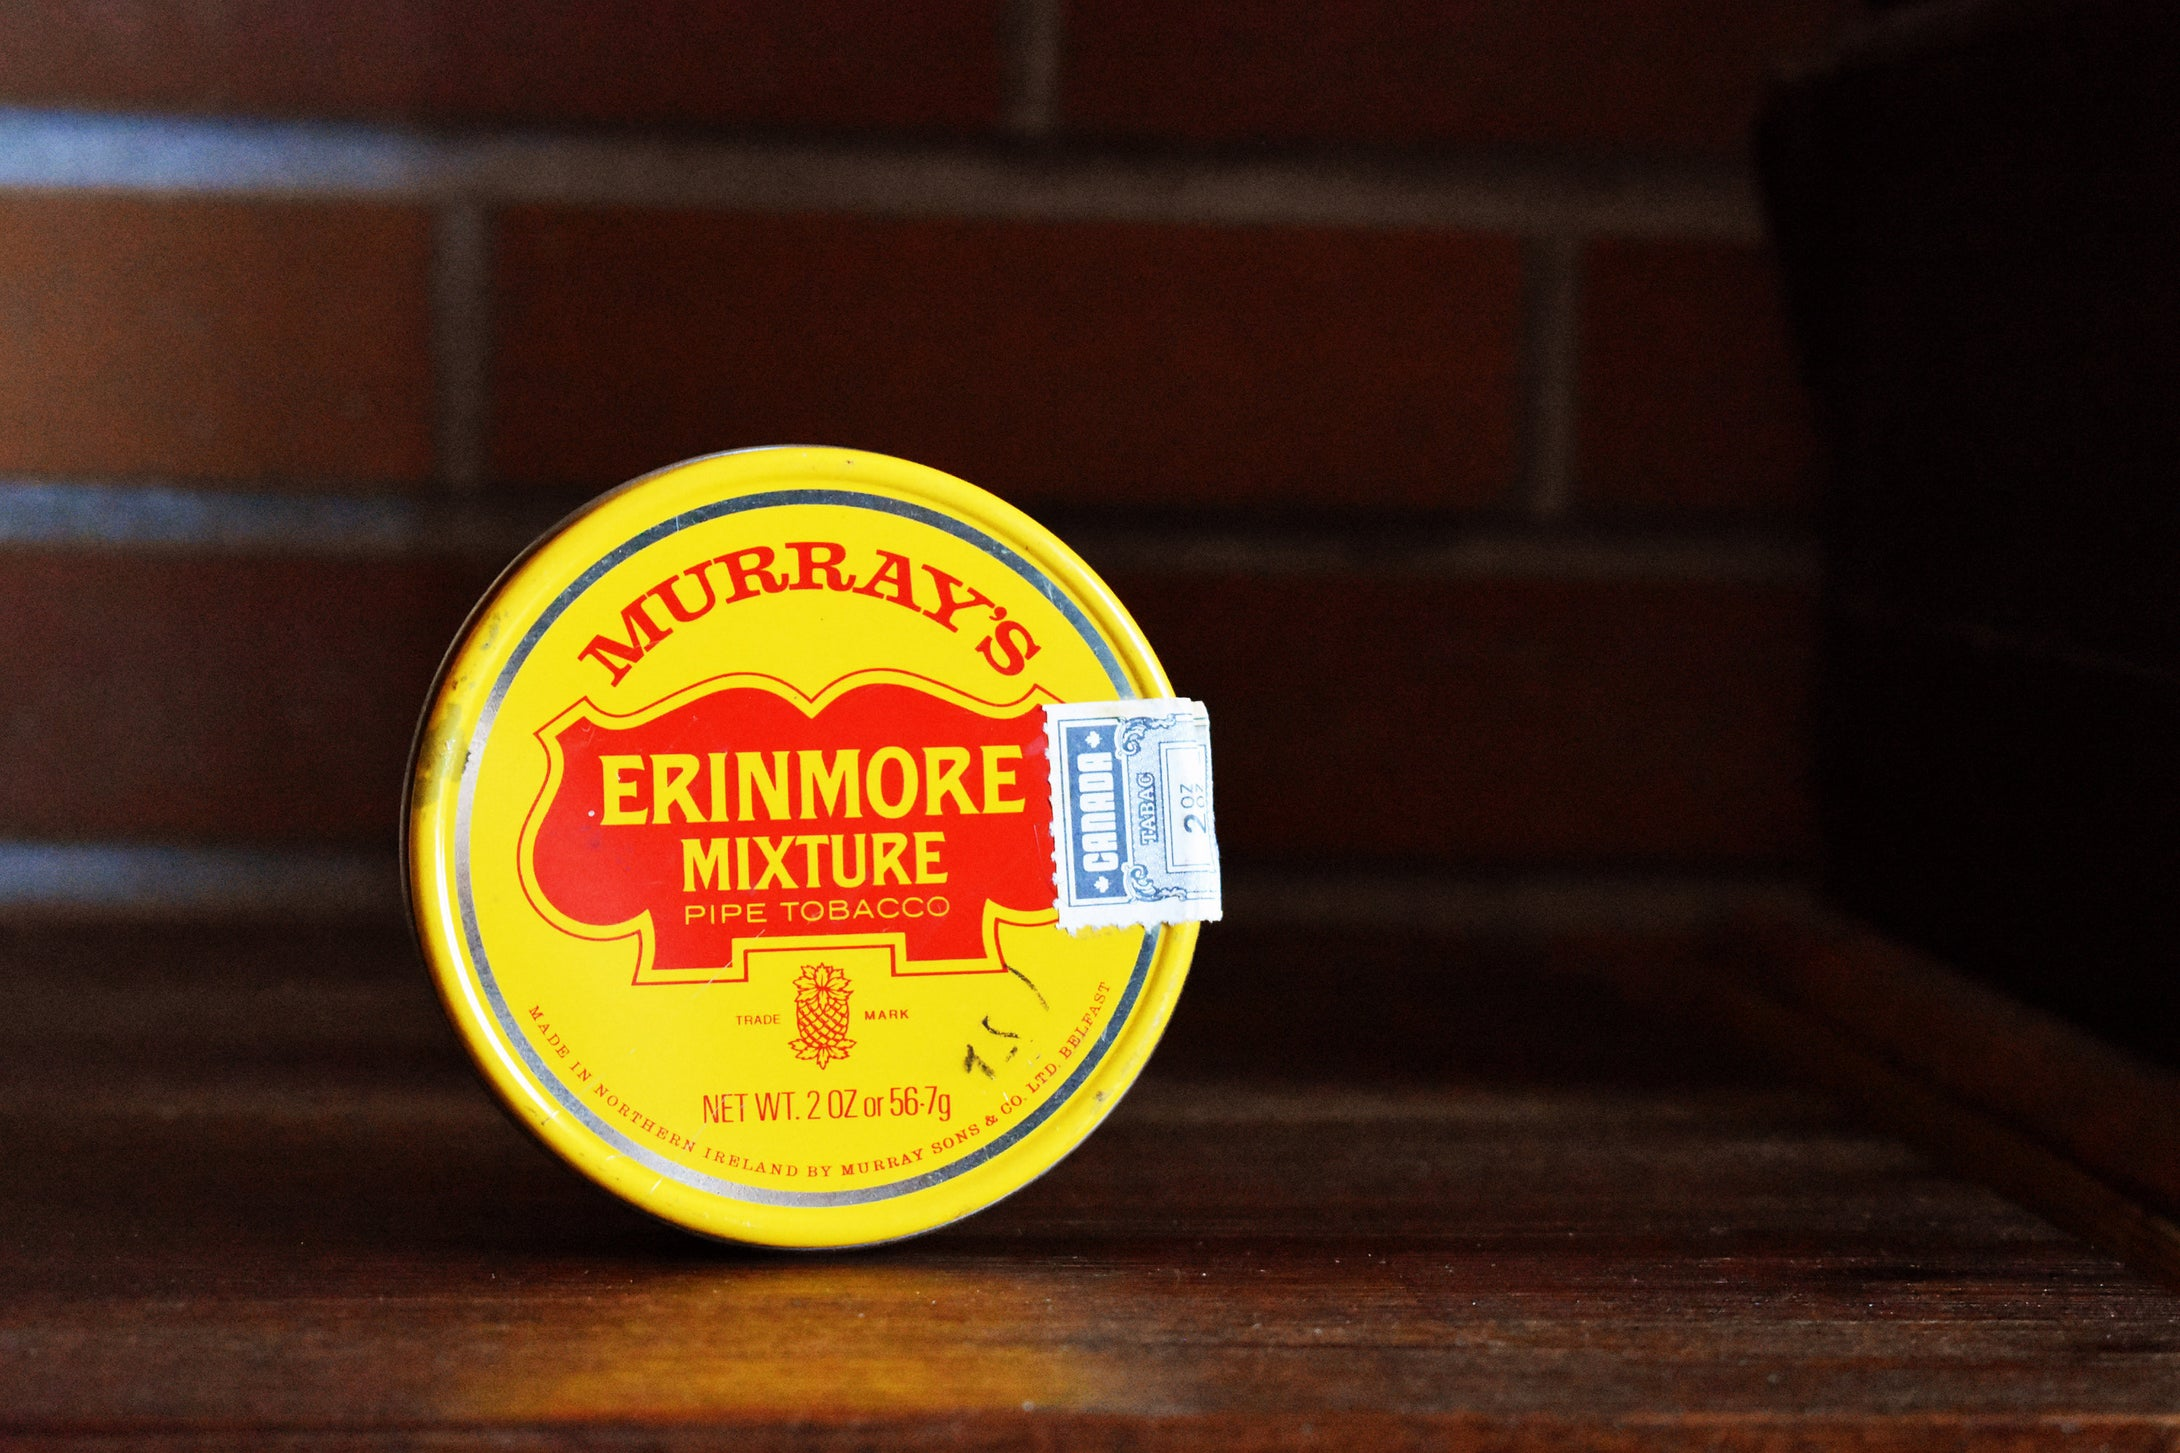 Murrays Erinmore Mixture Tobacco Tin - MURRAY'S ERINMORE MIX - Vintage Advertising Container - Net 2oz Weight - Belfast, Northern Ireland - Lot 2